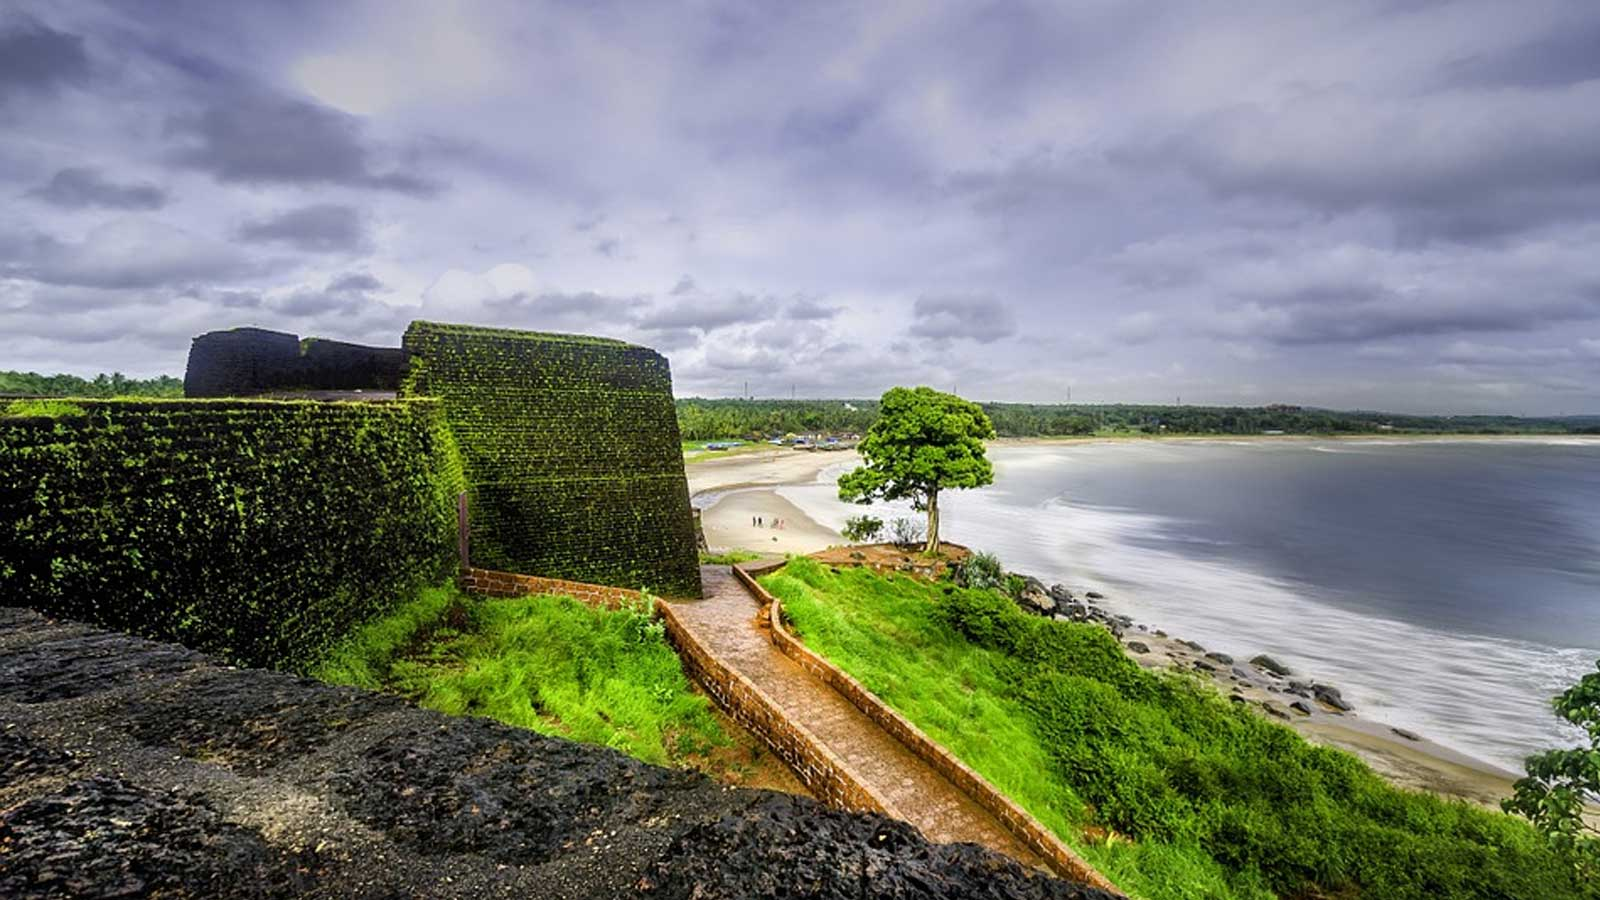 The Majestic Fort...